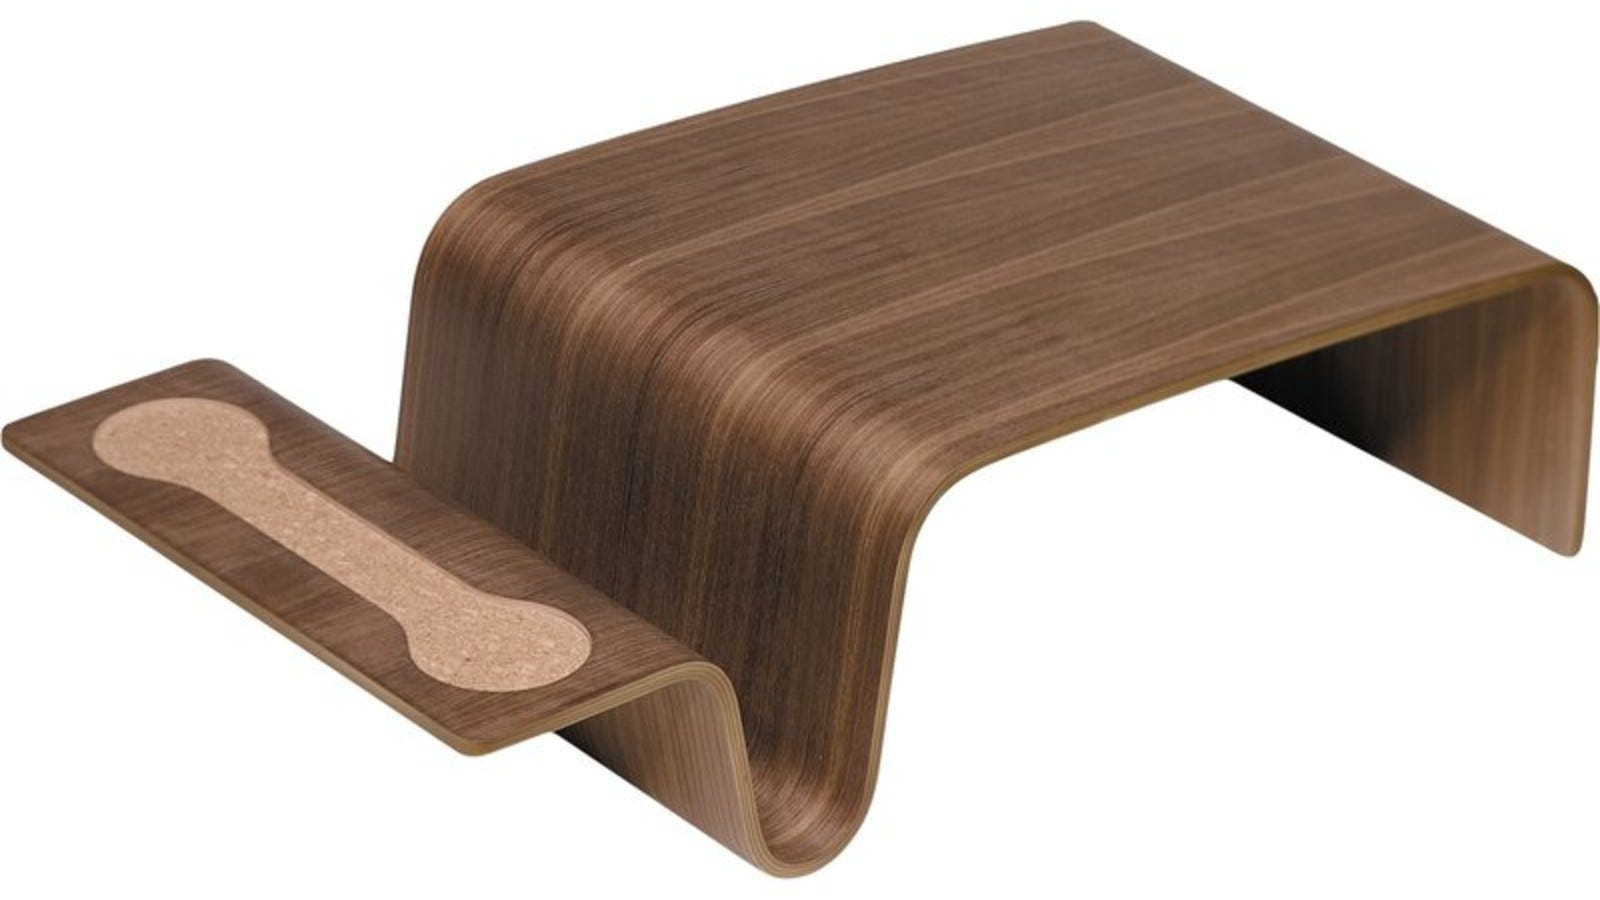 The Offi Overlap Tray Table